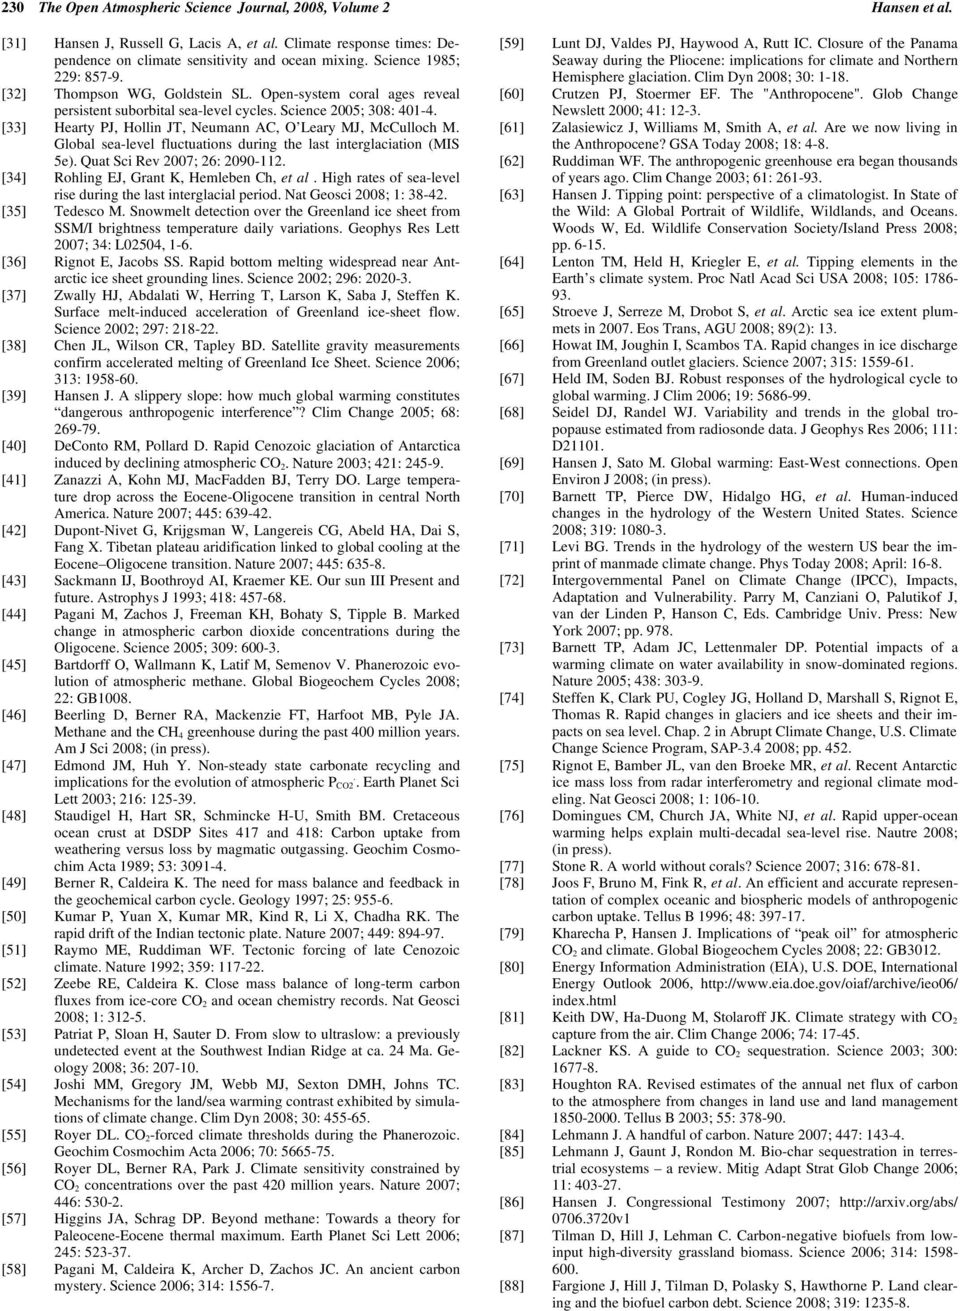 [33] Hearty PJ, Hollin JT, Neumann AC, O Leary MJ, McCulloch M. Global sea-level fluctuations during the last interglaciation (MIS 5e). Quat Sci Rev 27; 26: 29-112.